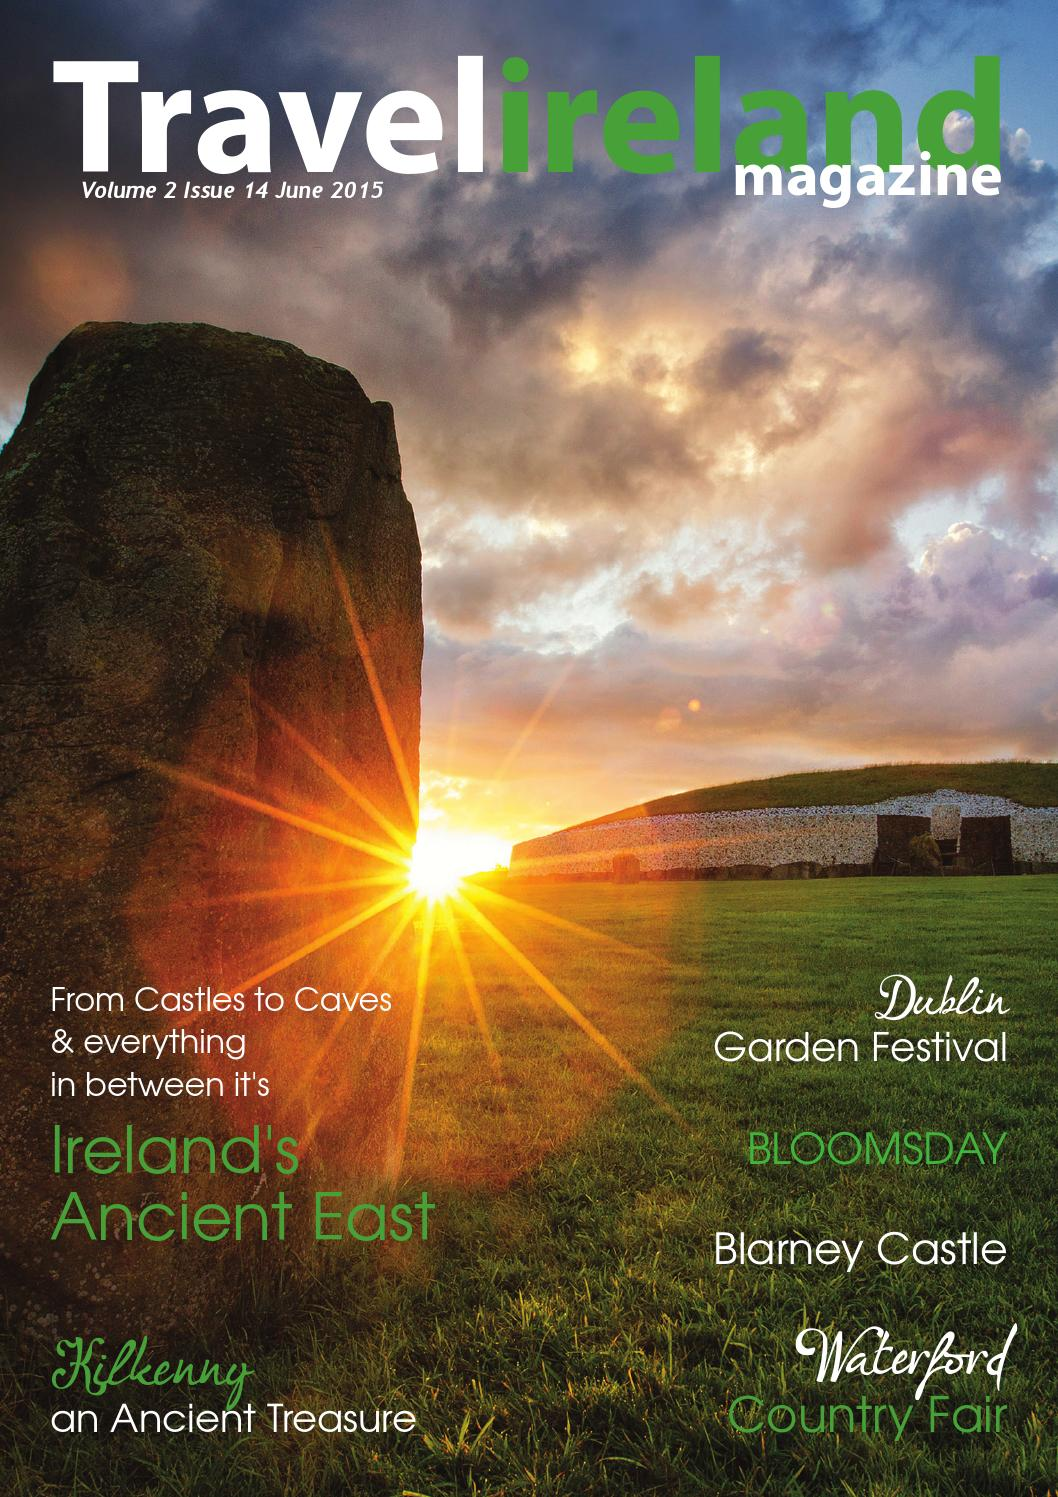 Travel Ireland Magazine Volume 2 Issue 14 By Travel